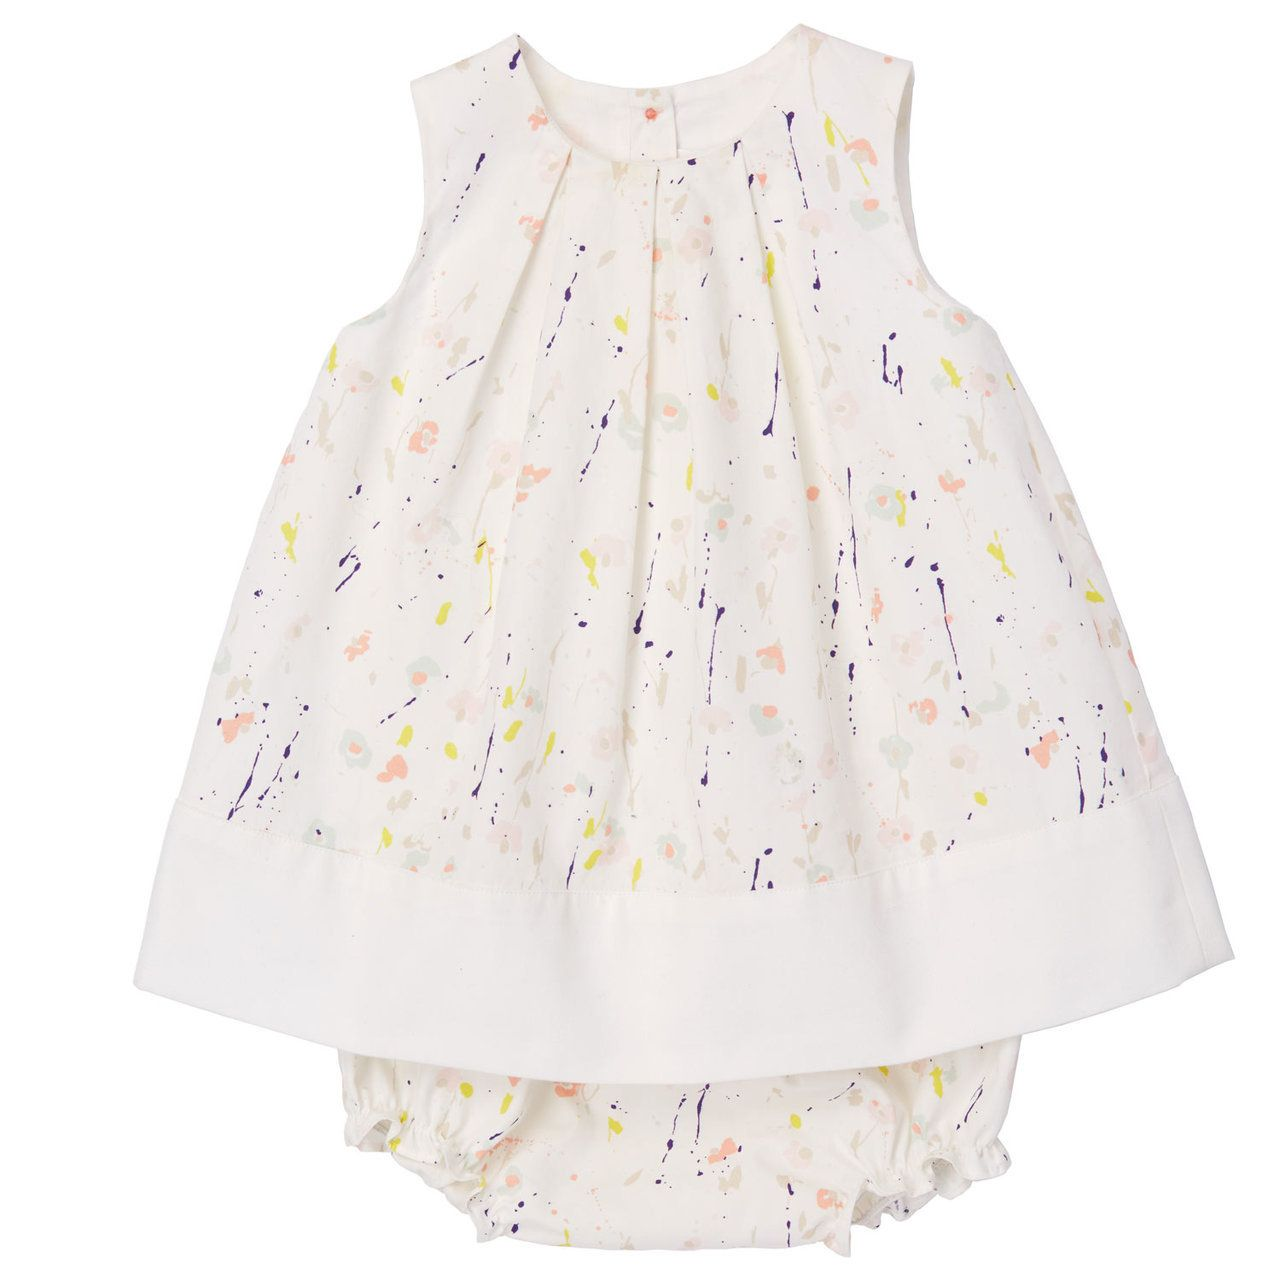 Painted Flower dress and Bloomer